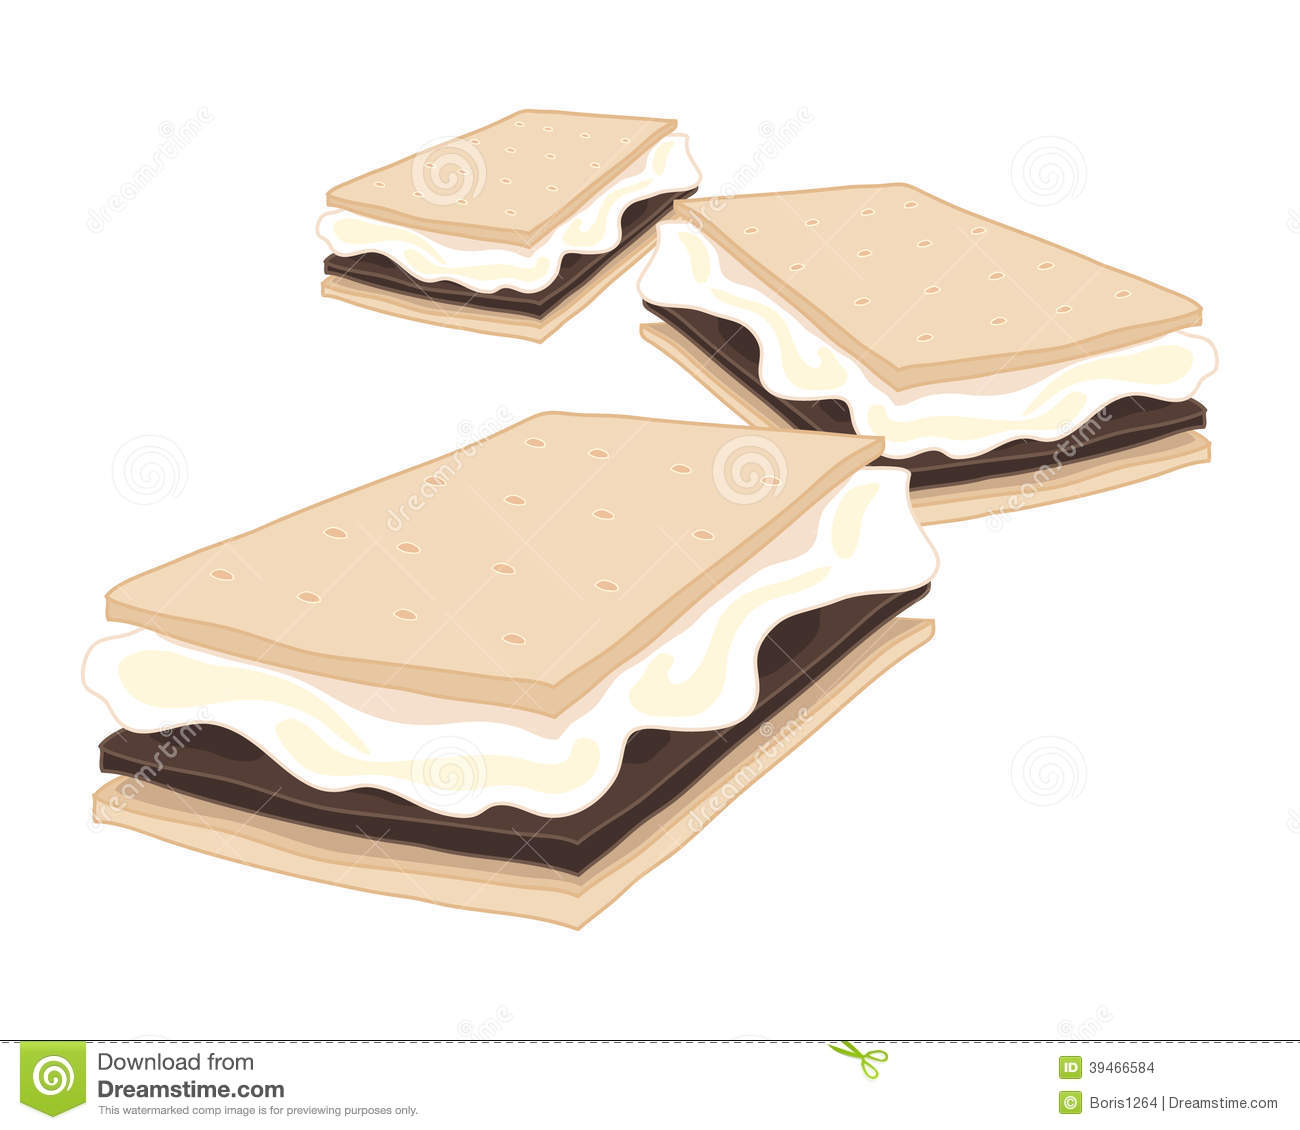 Smores Stock Illustrations – 15 Smores Stock Illustrations ...